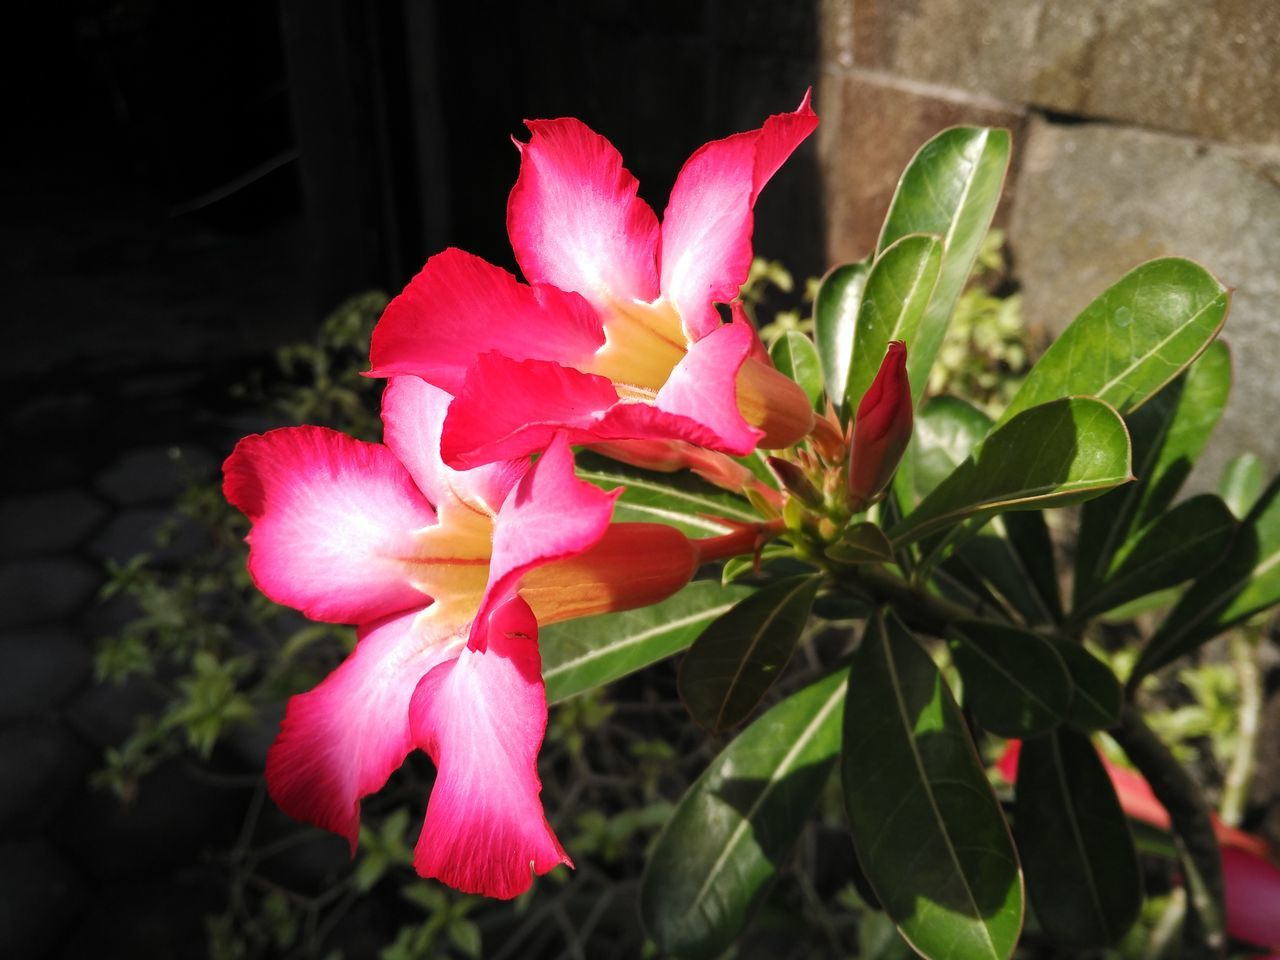 flower, petal, pink color, flower head, growth, beauty in nature, fragility, nature, plant, blooming, no people, freshness, day, close-up, outdoors, periwinkle, hibiscus